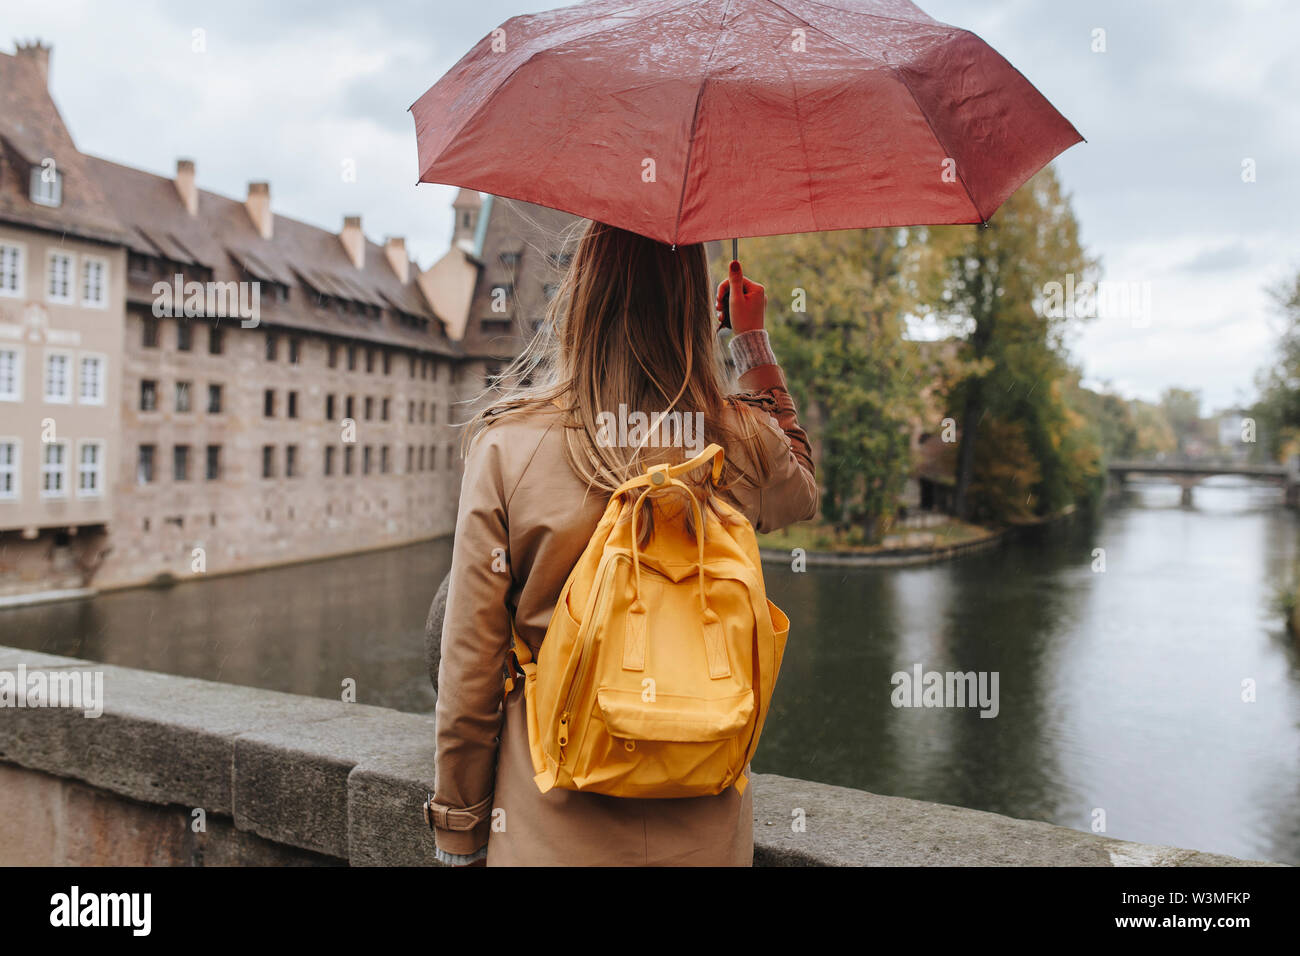 Woman wearing backpack holding umbrella by river in Nuremberg, Germany - Stock Image